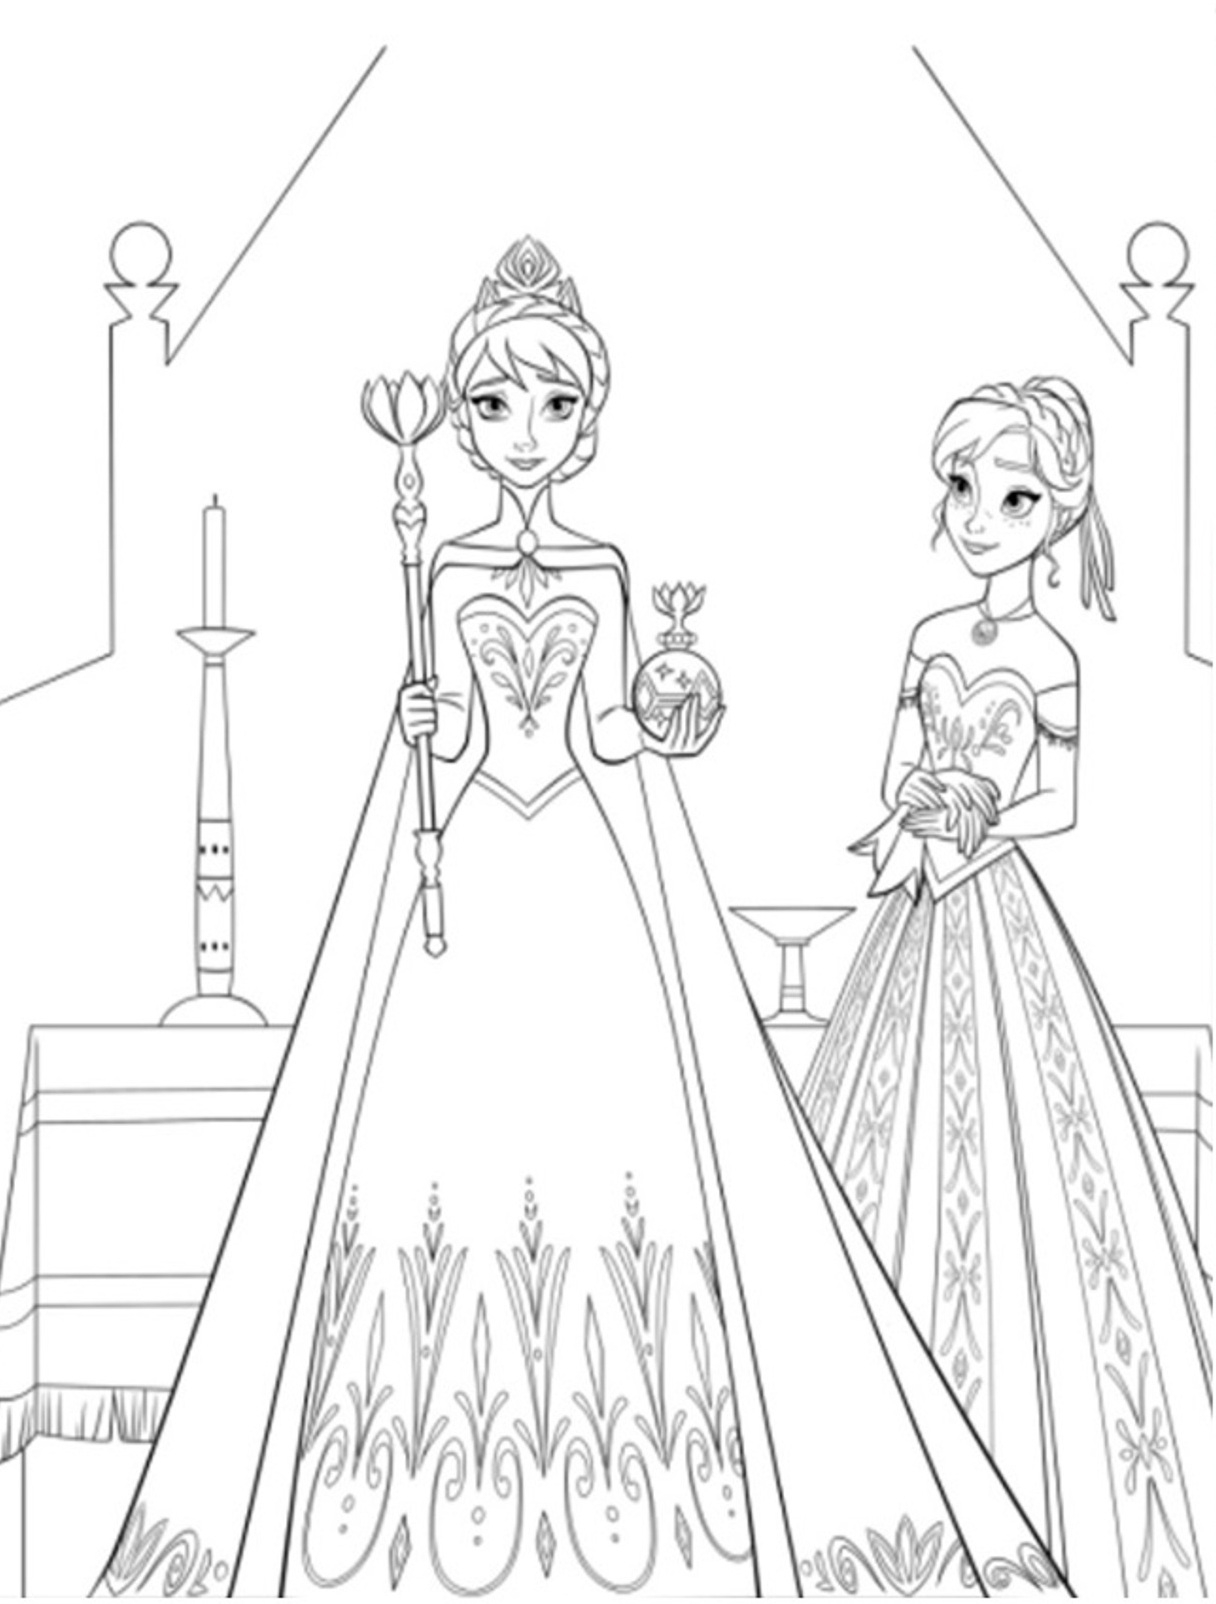 Best Free Elsa And Anna Coloring Pages Disney Frozen Cartoons Color Printable Of Princess